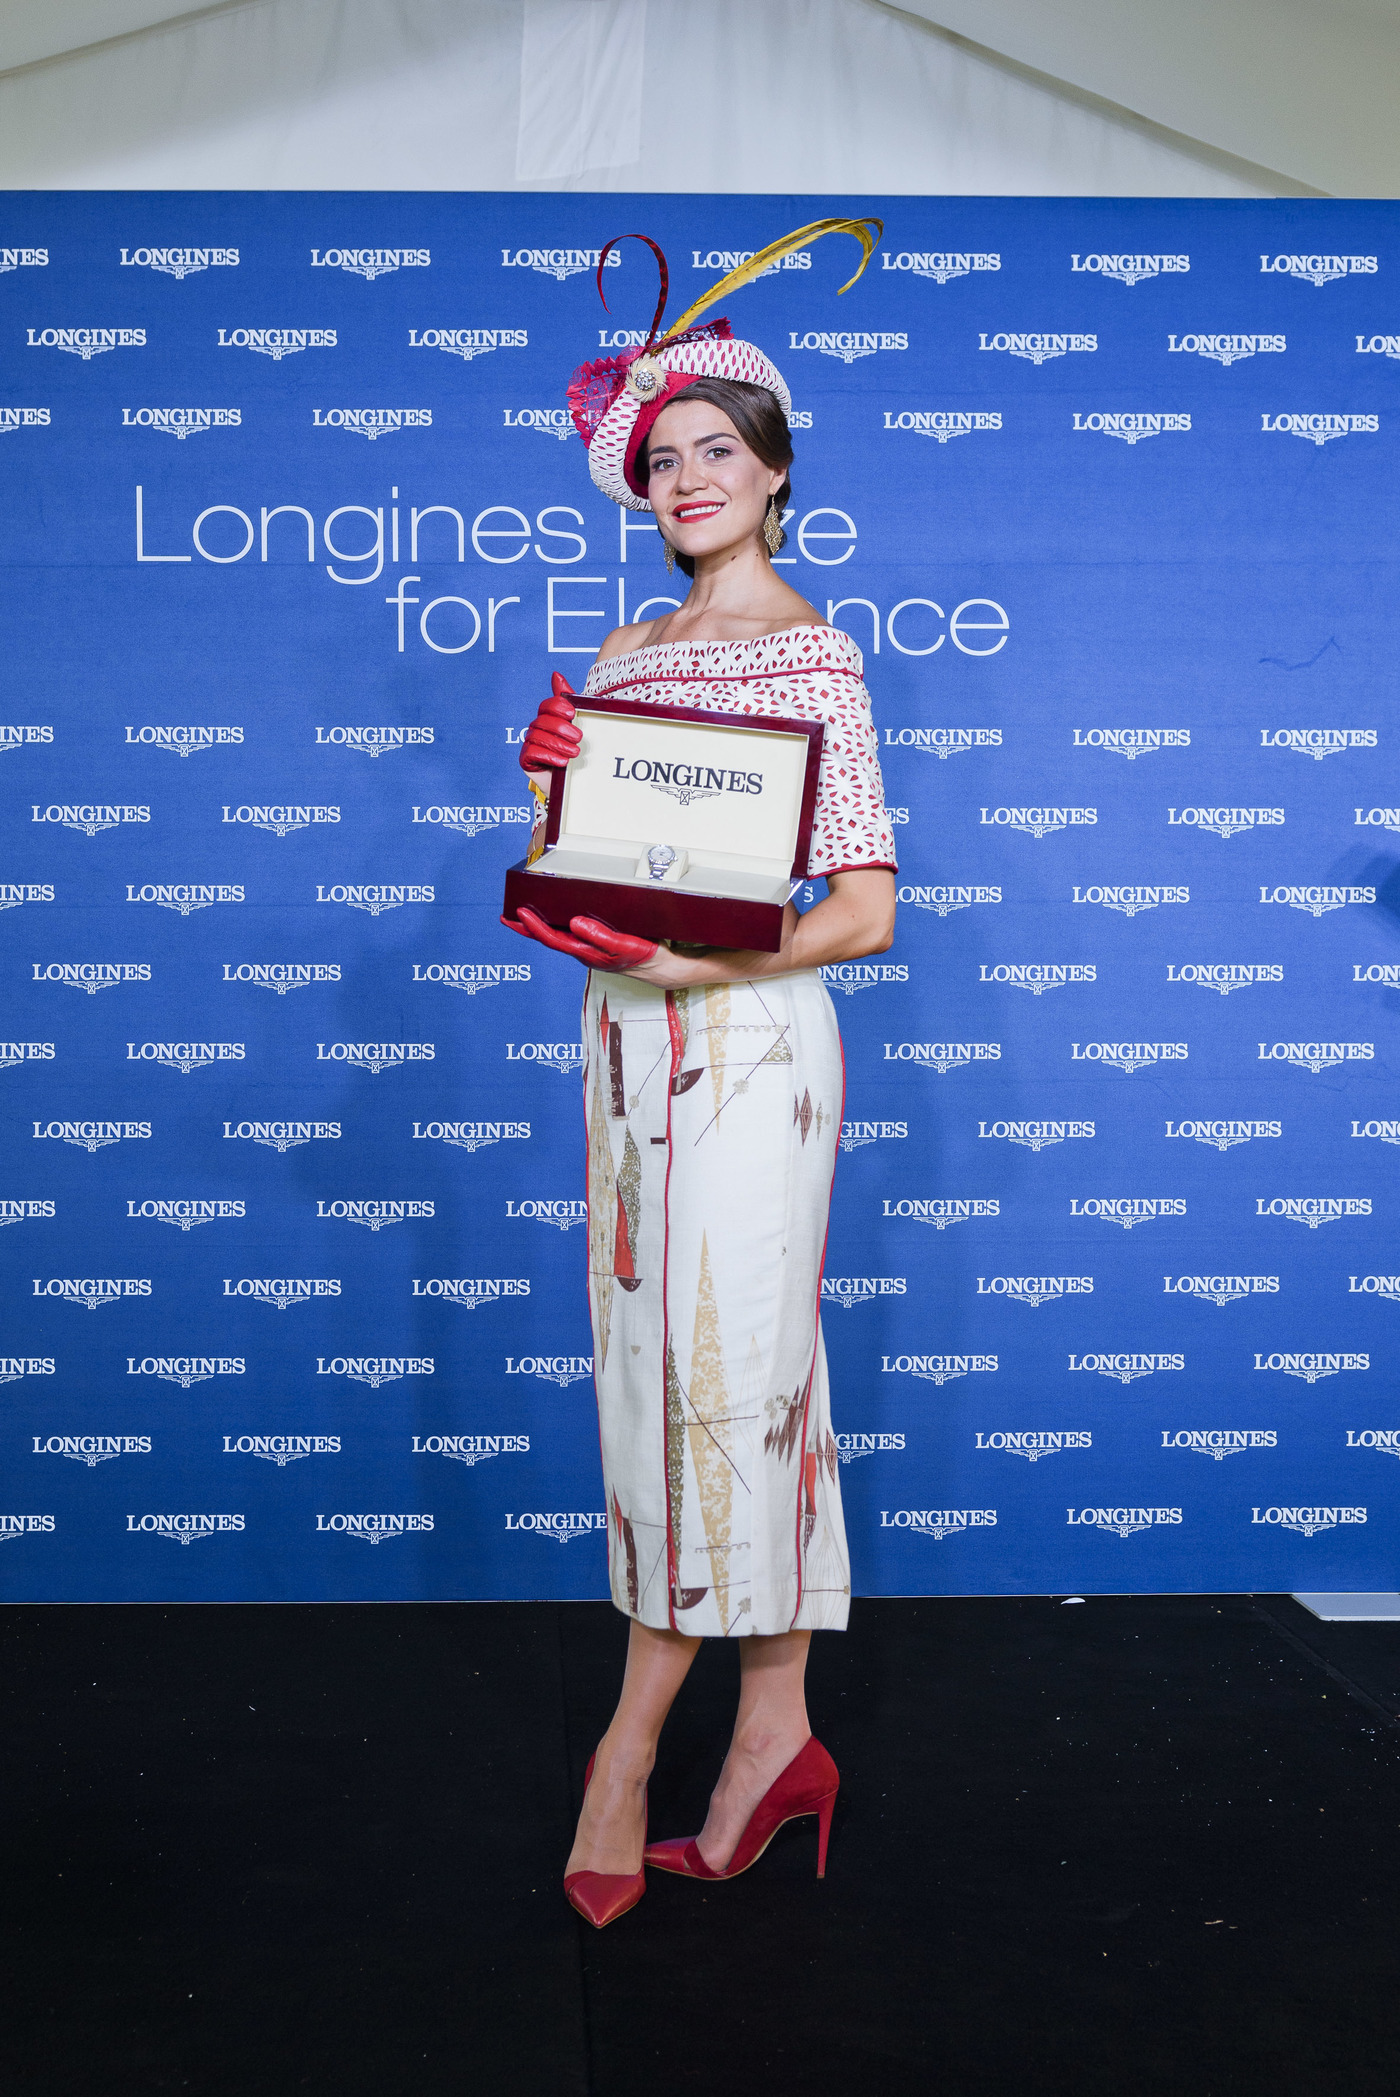 Longines Flat Racing Event: The Longines Queen Elizabeth Stakes brings the Sydney Carnival to an elegant close 3